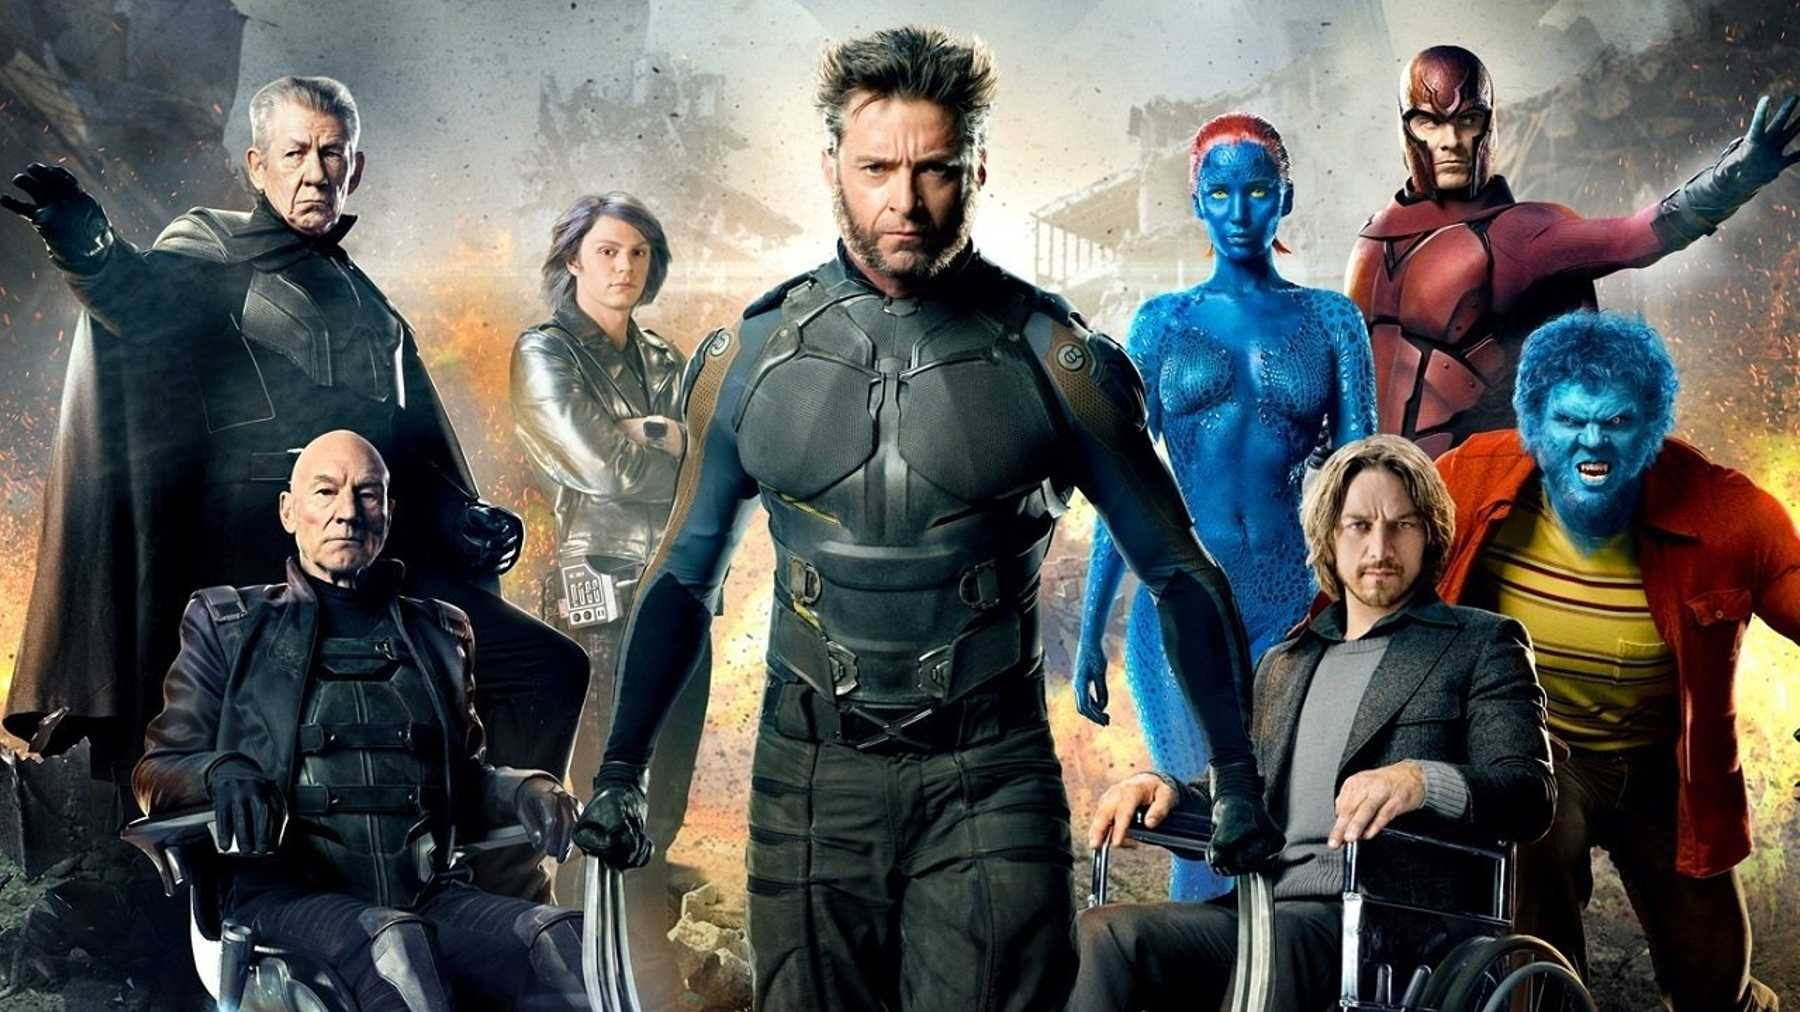 X Men: Complete Movie Series Hollywood Movie [Dual Audio] [Hindi or English] x265 AAC ESubs [800MB]